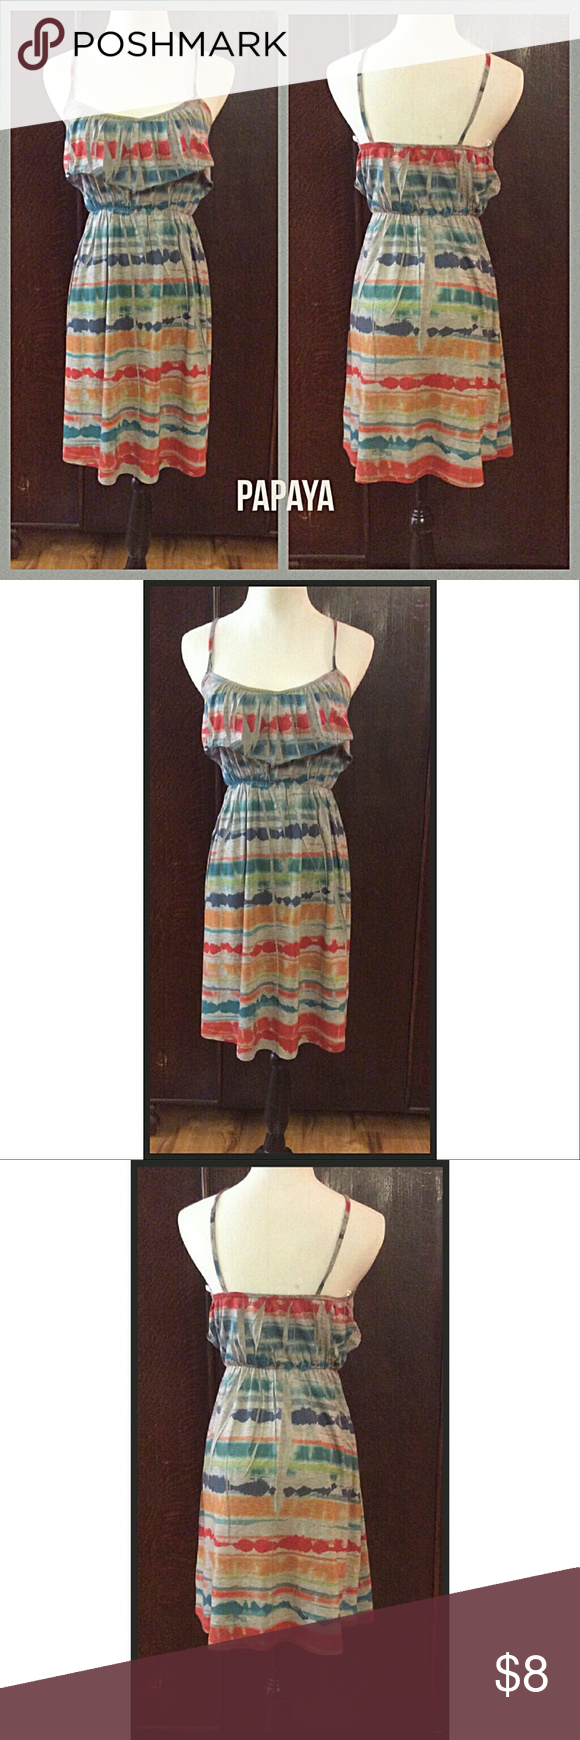 "NWOT Ruffle Bodice Tie-Dye Festival Dress NWOT Papaya Ruffle Bodice Tie-Dye Festival Spaghetti Strap Dress. NEVER WORN.  Length 30"".  Material 65% Polyester 35% Rayon.  *See Attached Size Chart* - juniors size large Boutique Dresses Mini"